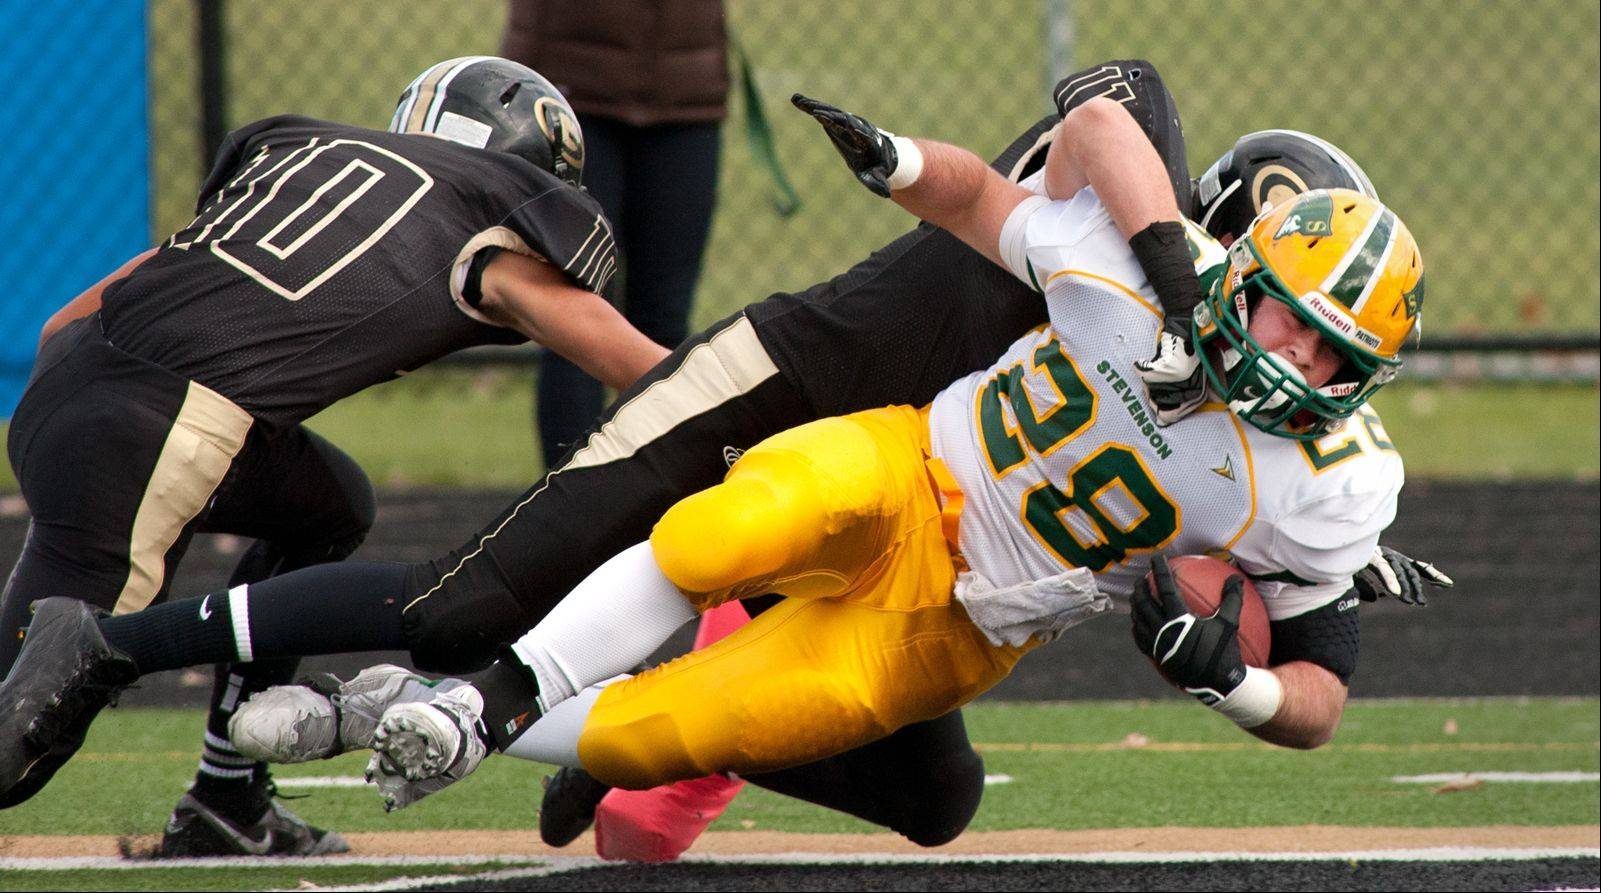 Stevenson's Jack Joseph scores a first-half touchdown for the Patriots on Saturday.